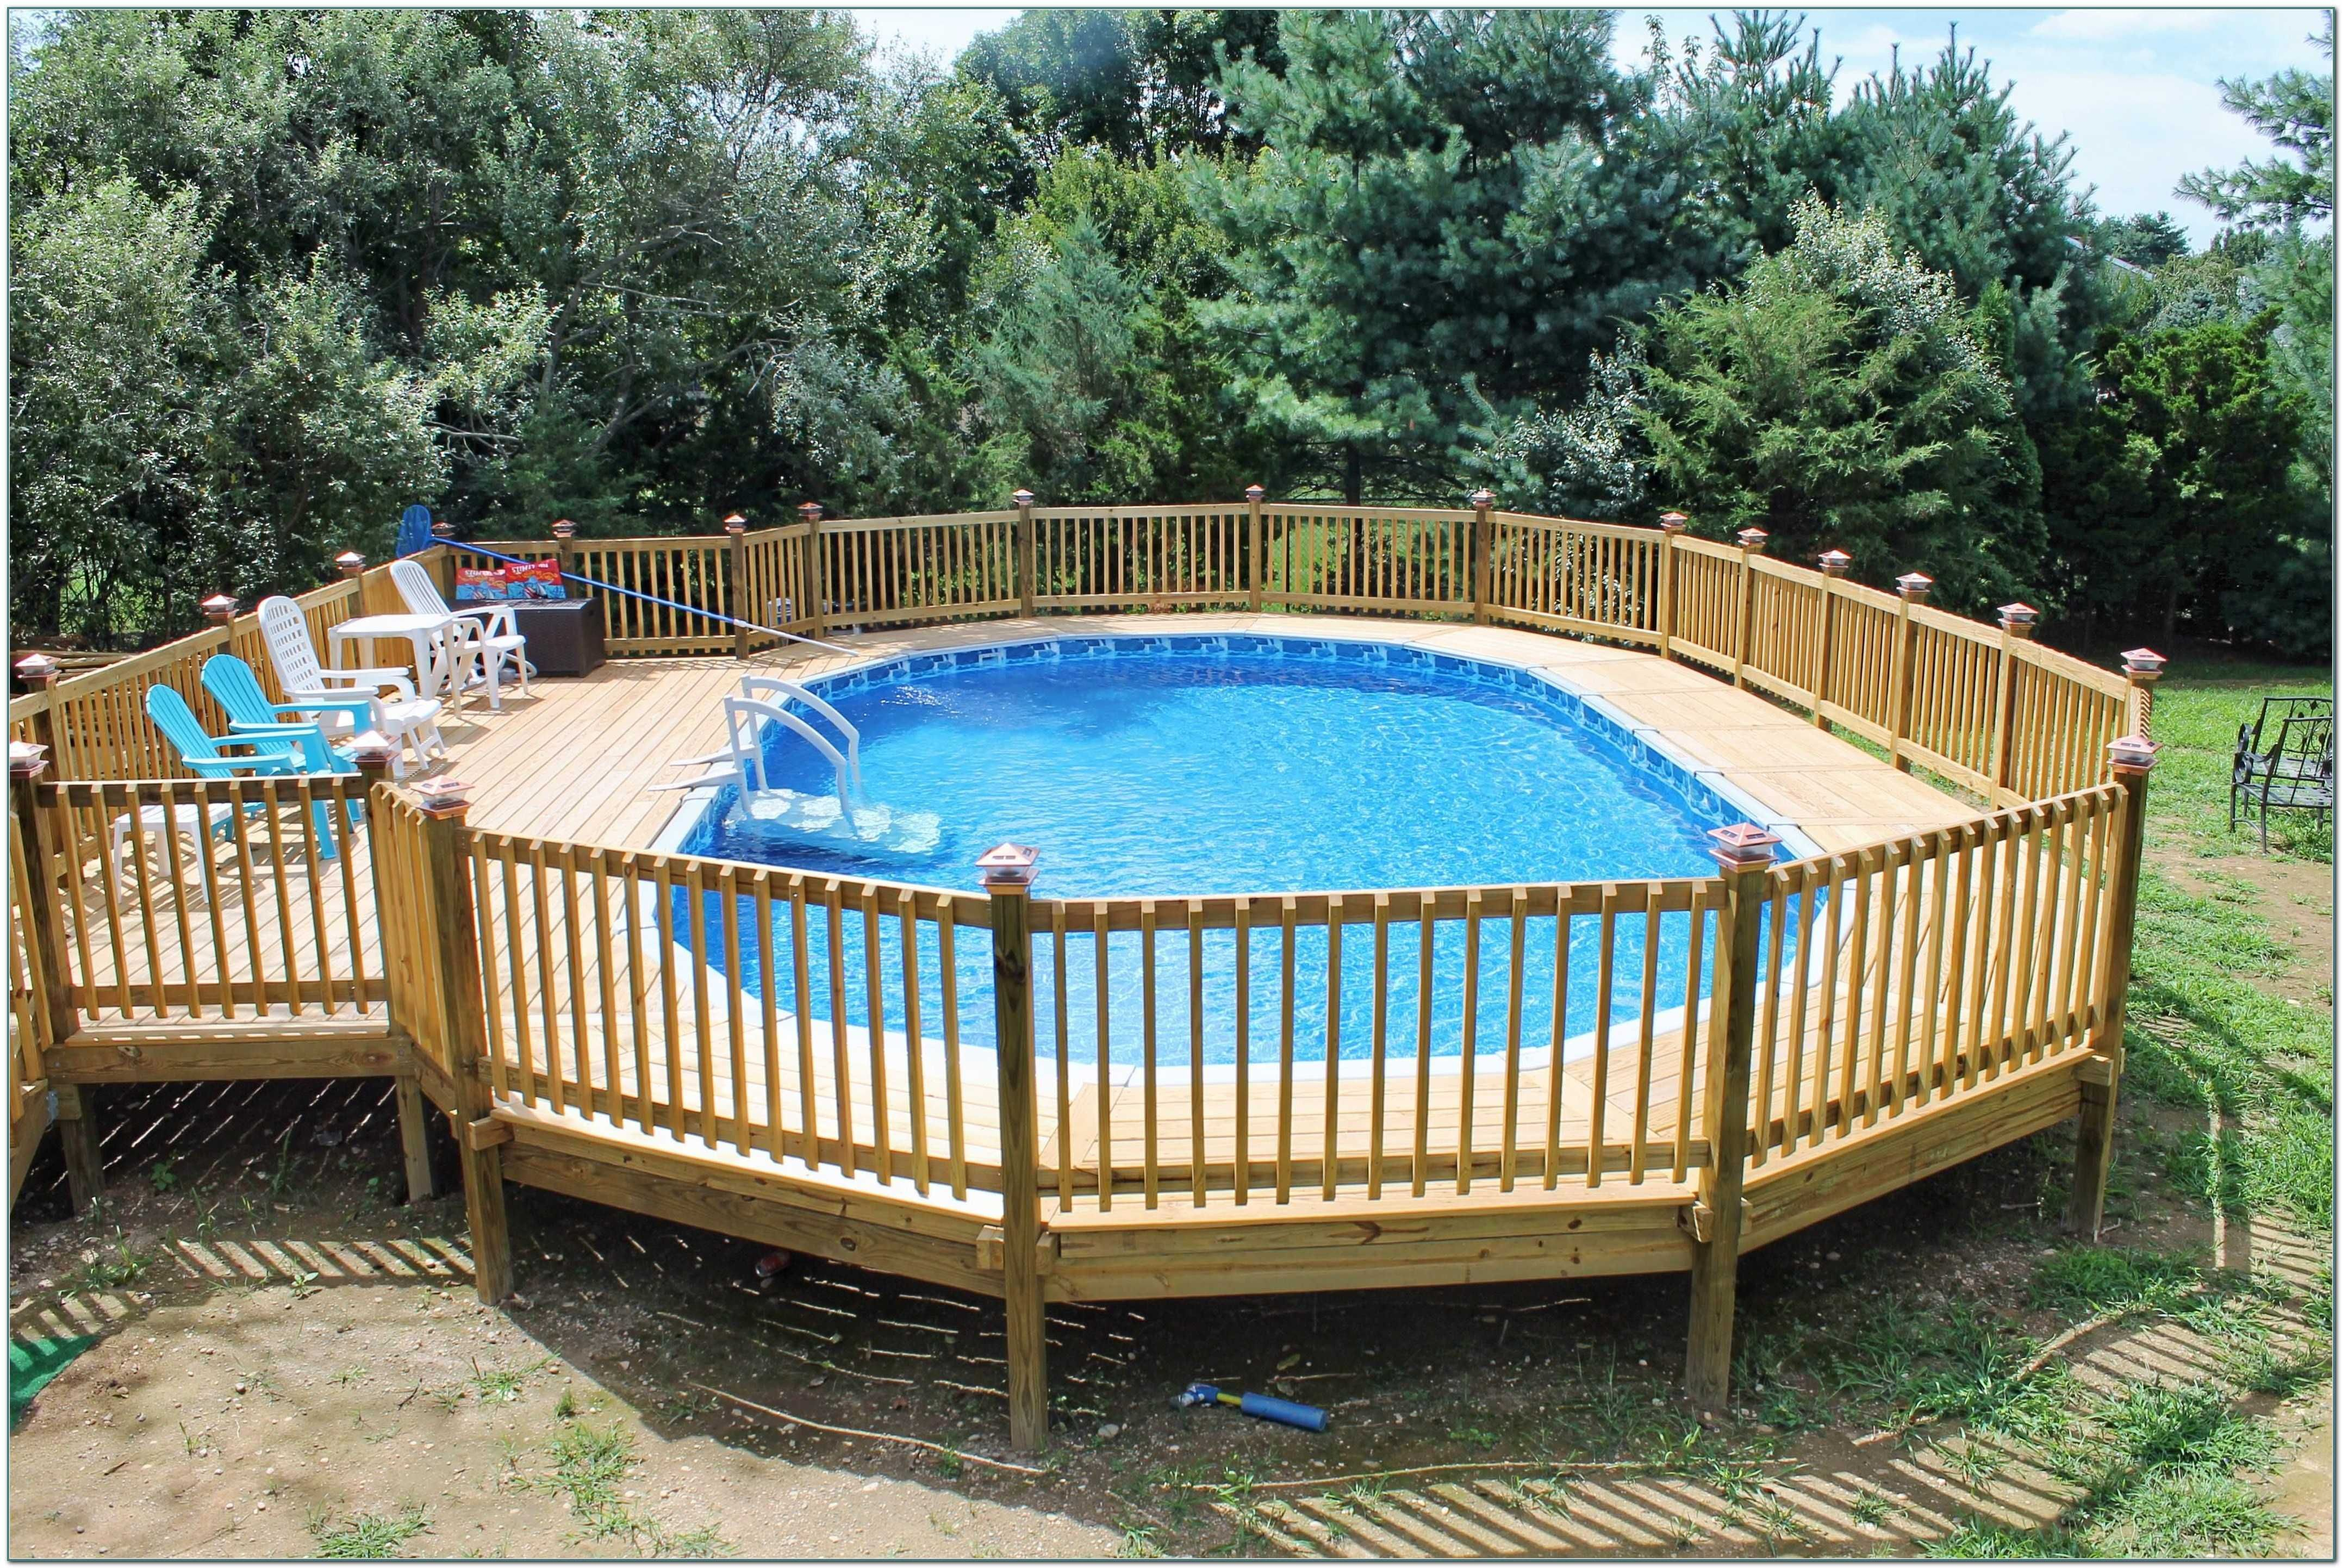 Above Ground Oval Pool Decks Ideas With Attractive Deck Plans Images Pools